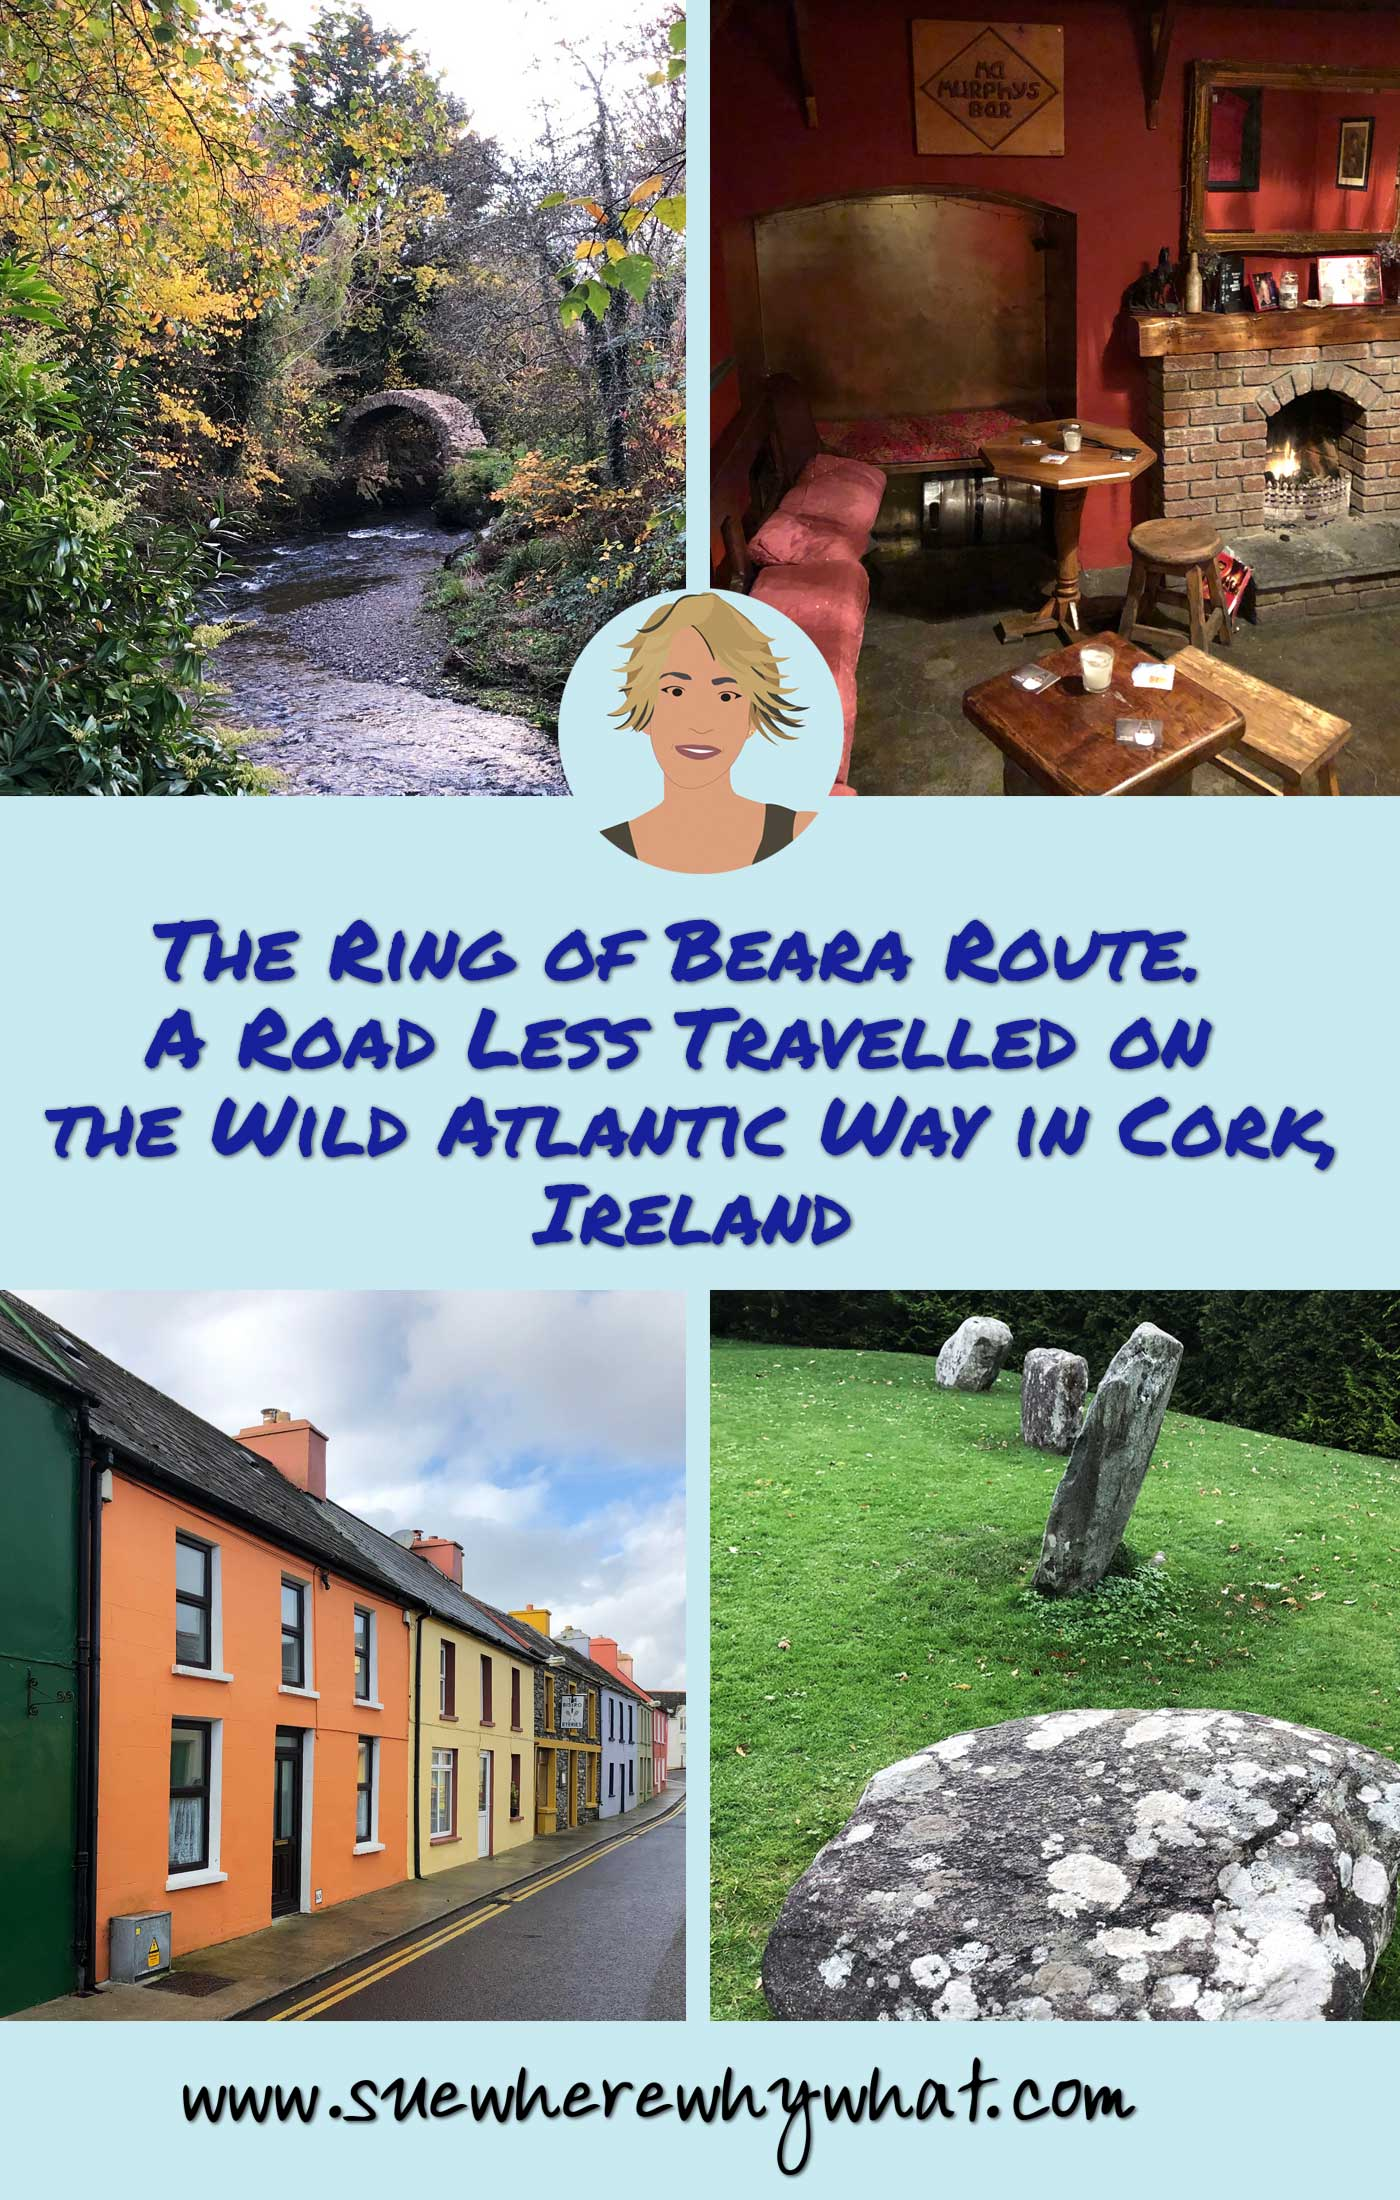 The Ring of Beara Route. A Road Less Travelled on the Wild Atlantic Way in Cork